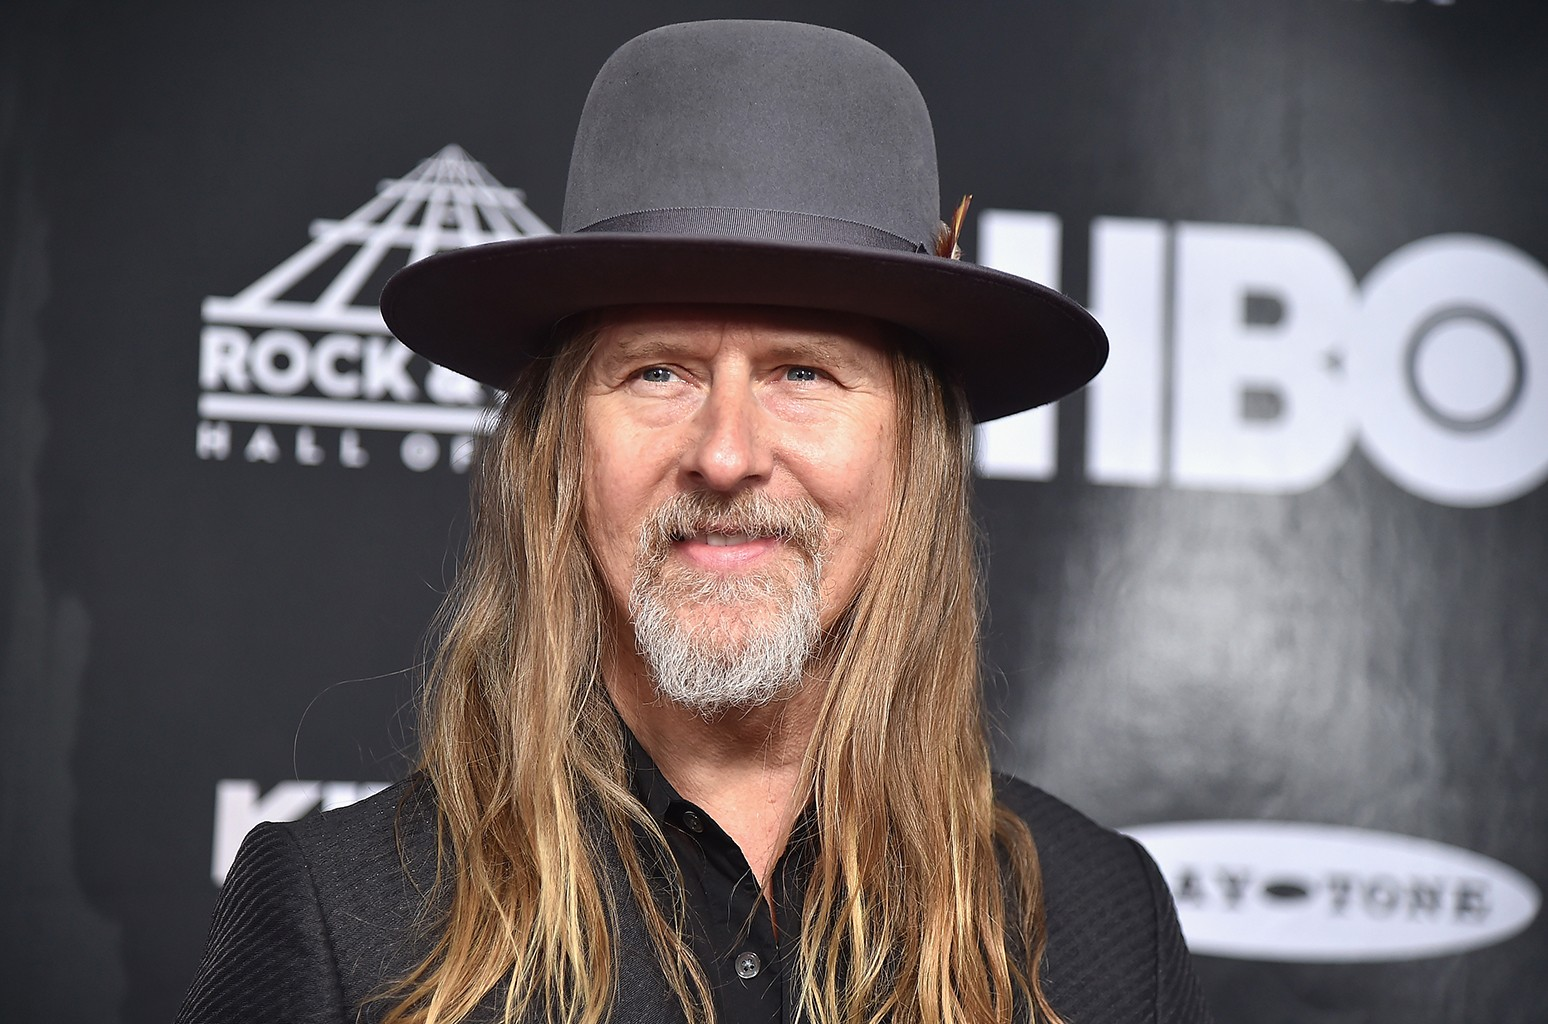 Alice In Chains' Jerry Cantrell on New Album 'Rainier Fog': 'We're Not Trying to Repeat Ourselves'